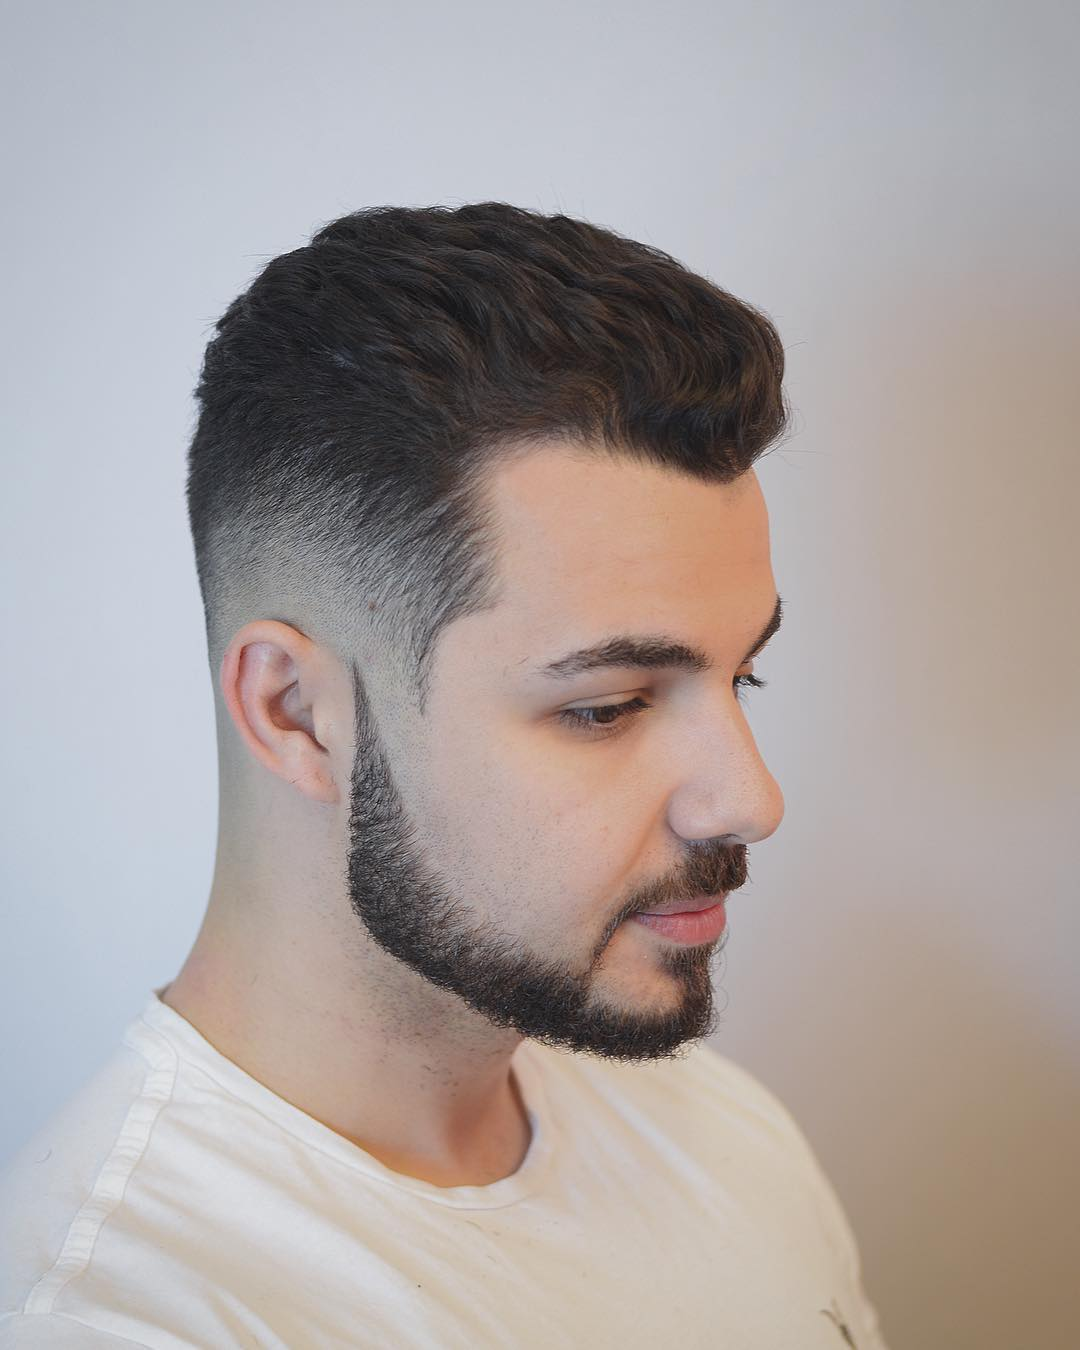 40 Simple, Regular, Clean Cut Haircuts for Men - Men's Hairstyles